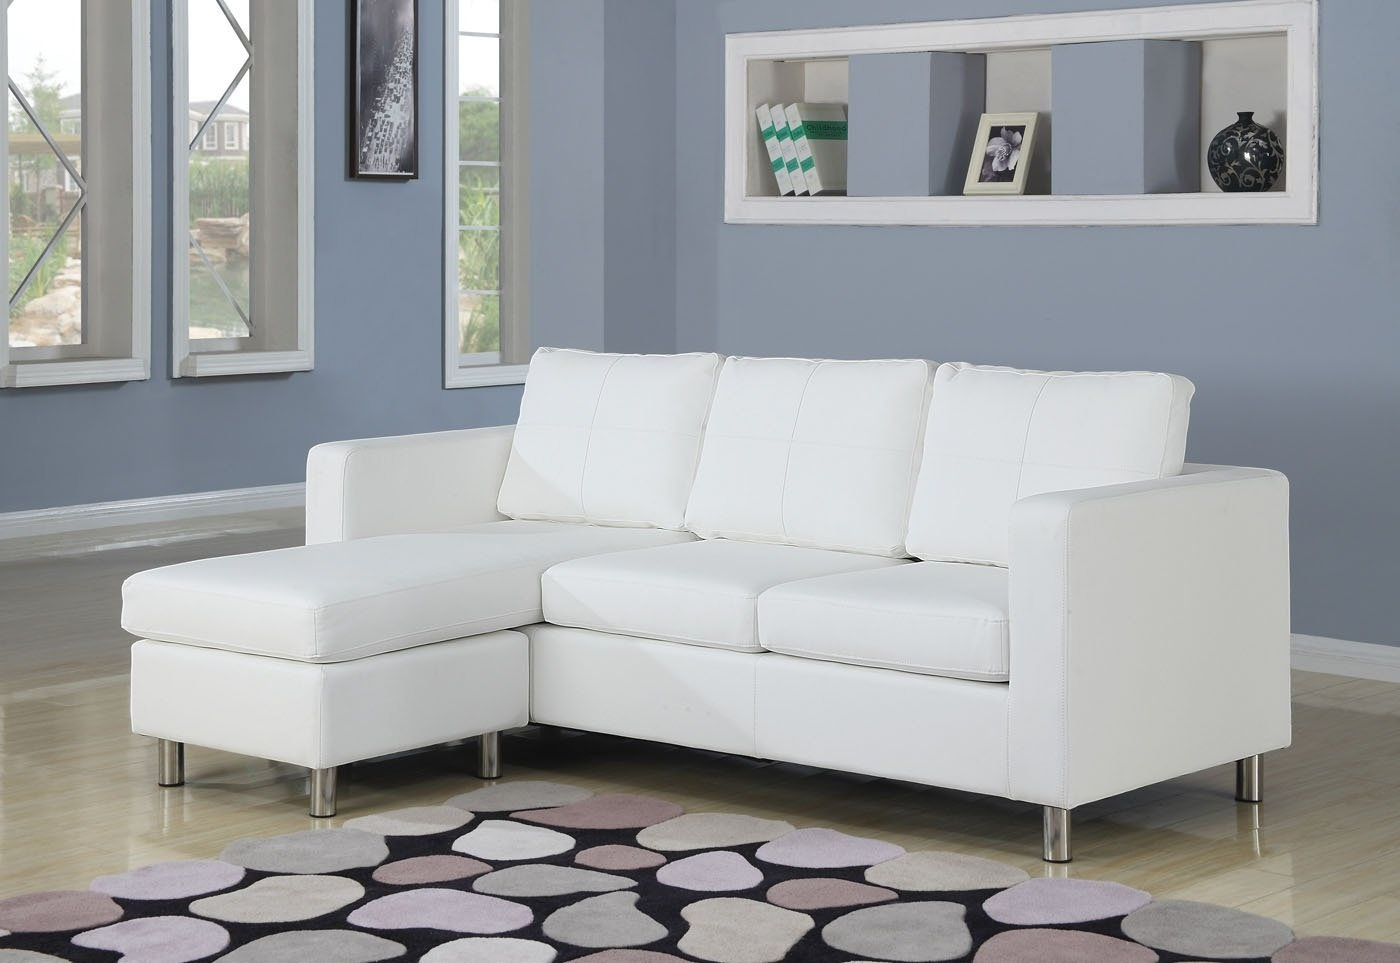 4Pc Crowningshield Contemporary Chaise Sectional Sofas Throughout Recent Small Sectional Sofa With Chaise: Perfect Choice For A (View 8 of 25)